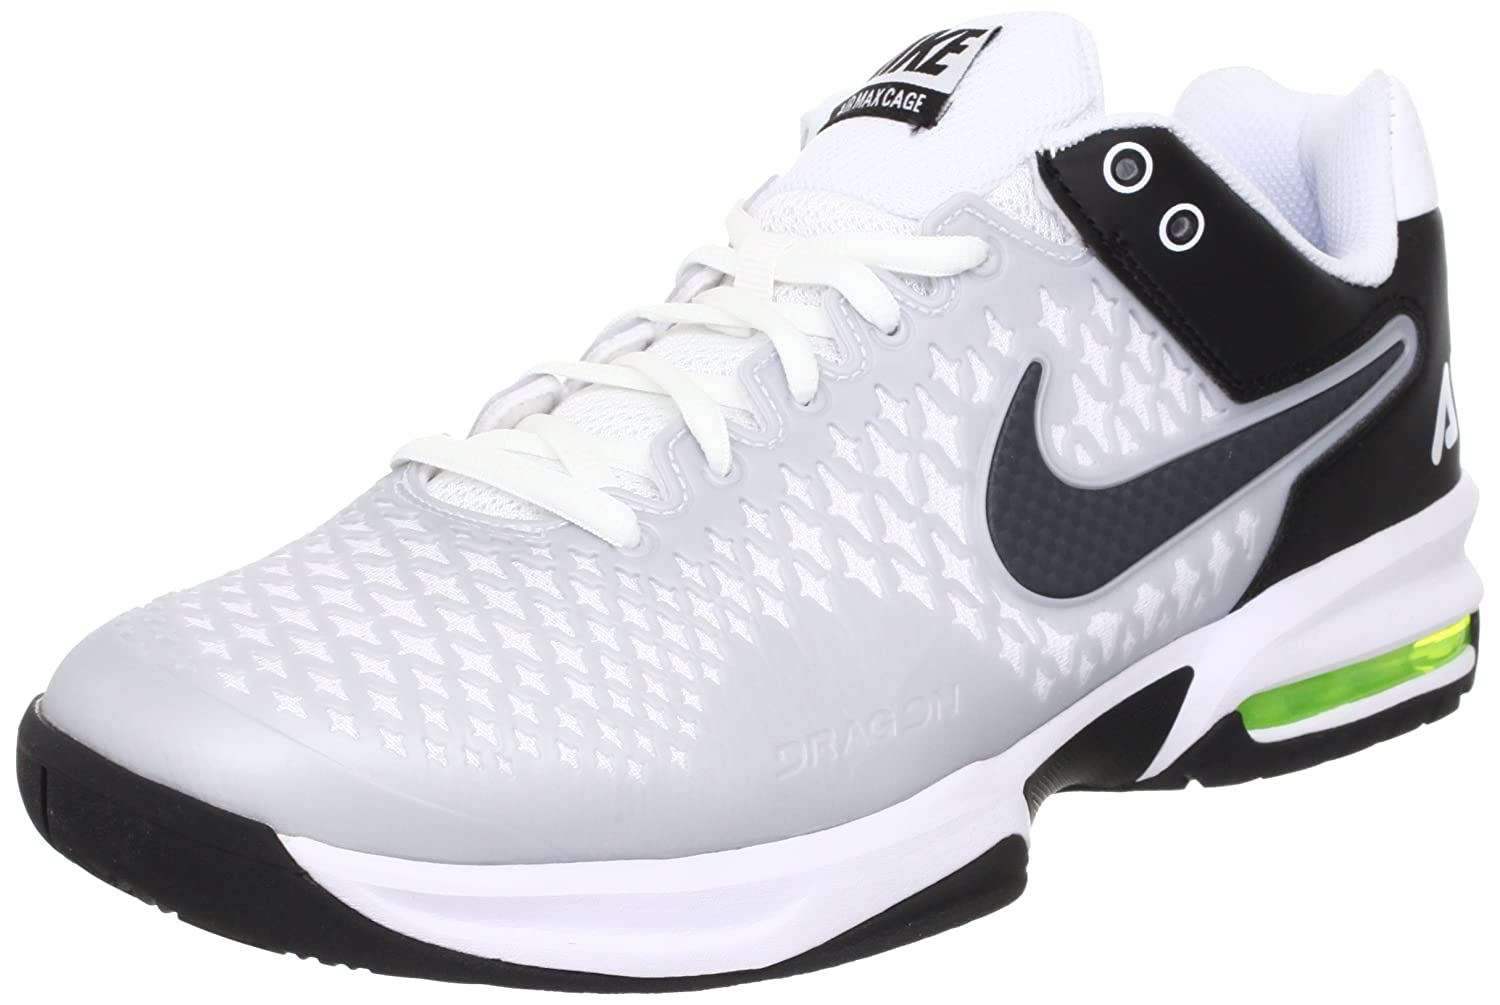 outlet store 5dd85 f1223 NIKE Men s Air Max Cage 554875 100 White Anthracite Black Tennis Sneaker